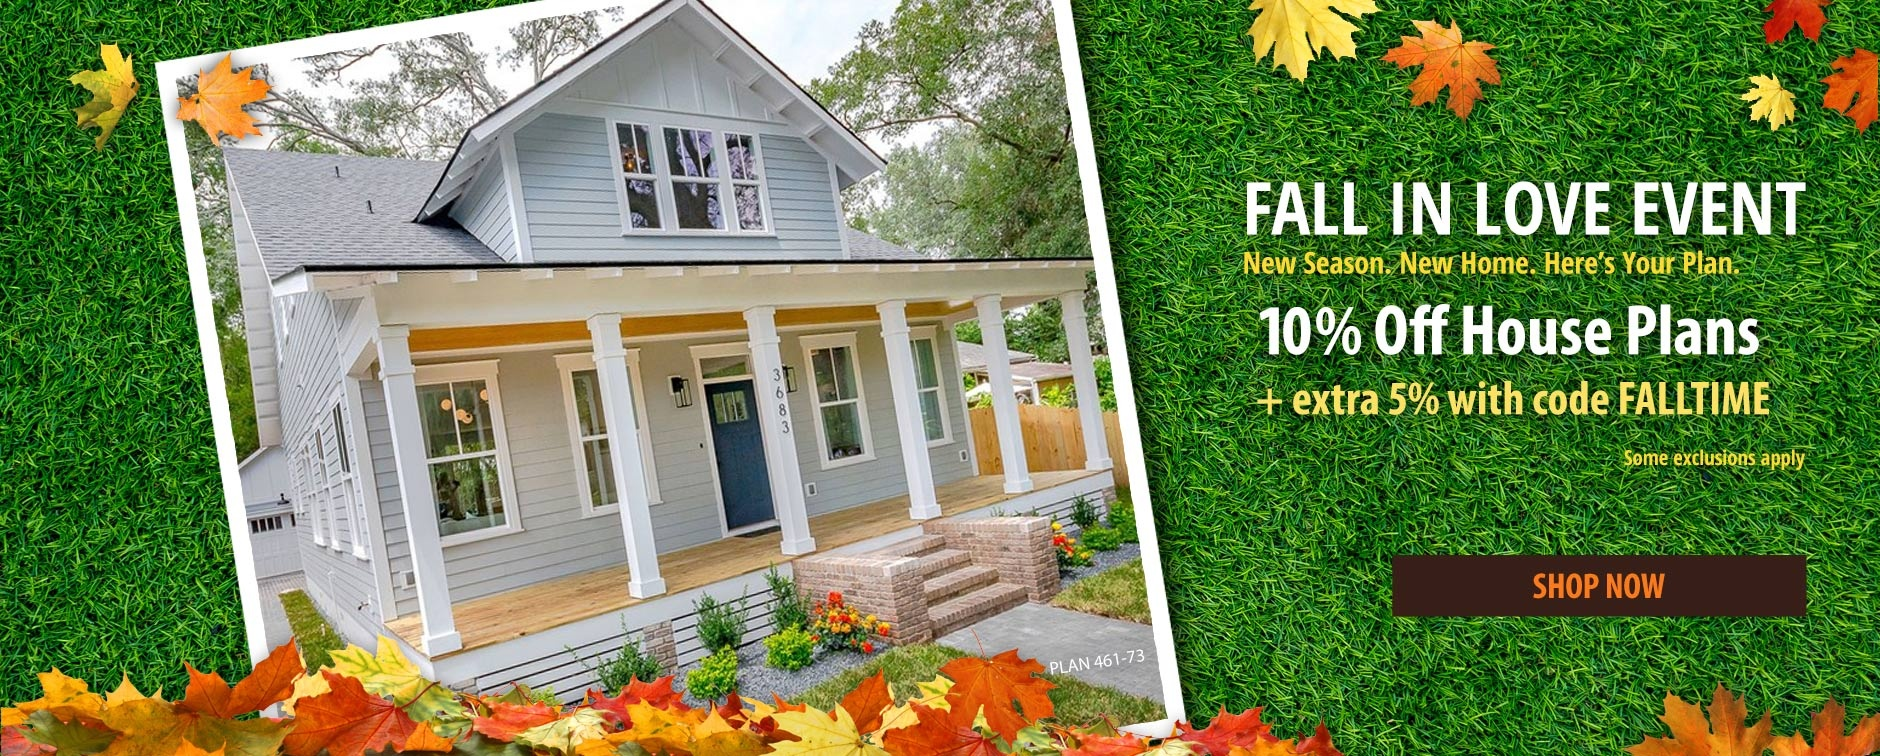 House Plan Sale 10% Off Plus Extra 5% with Code FALLTIME